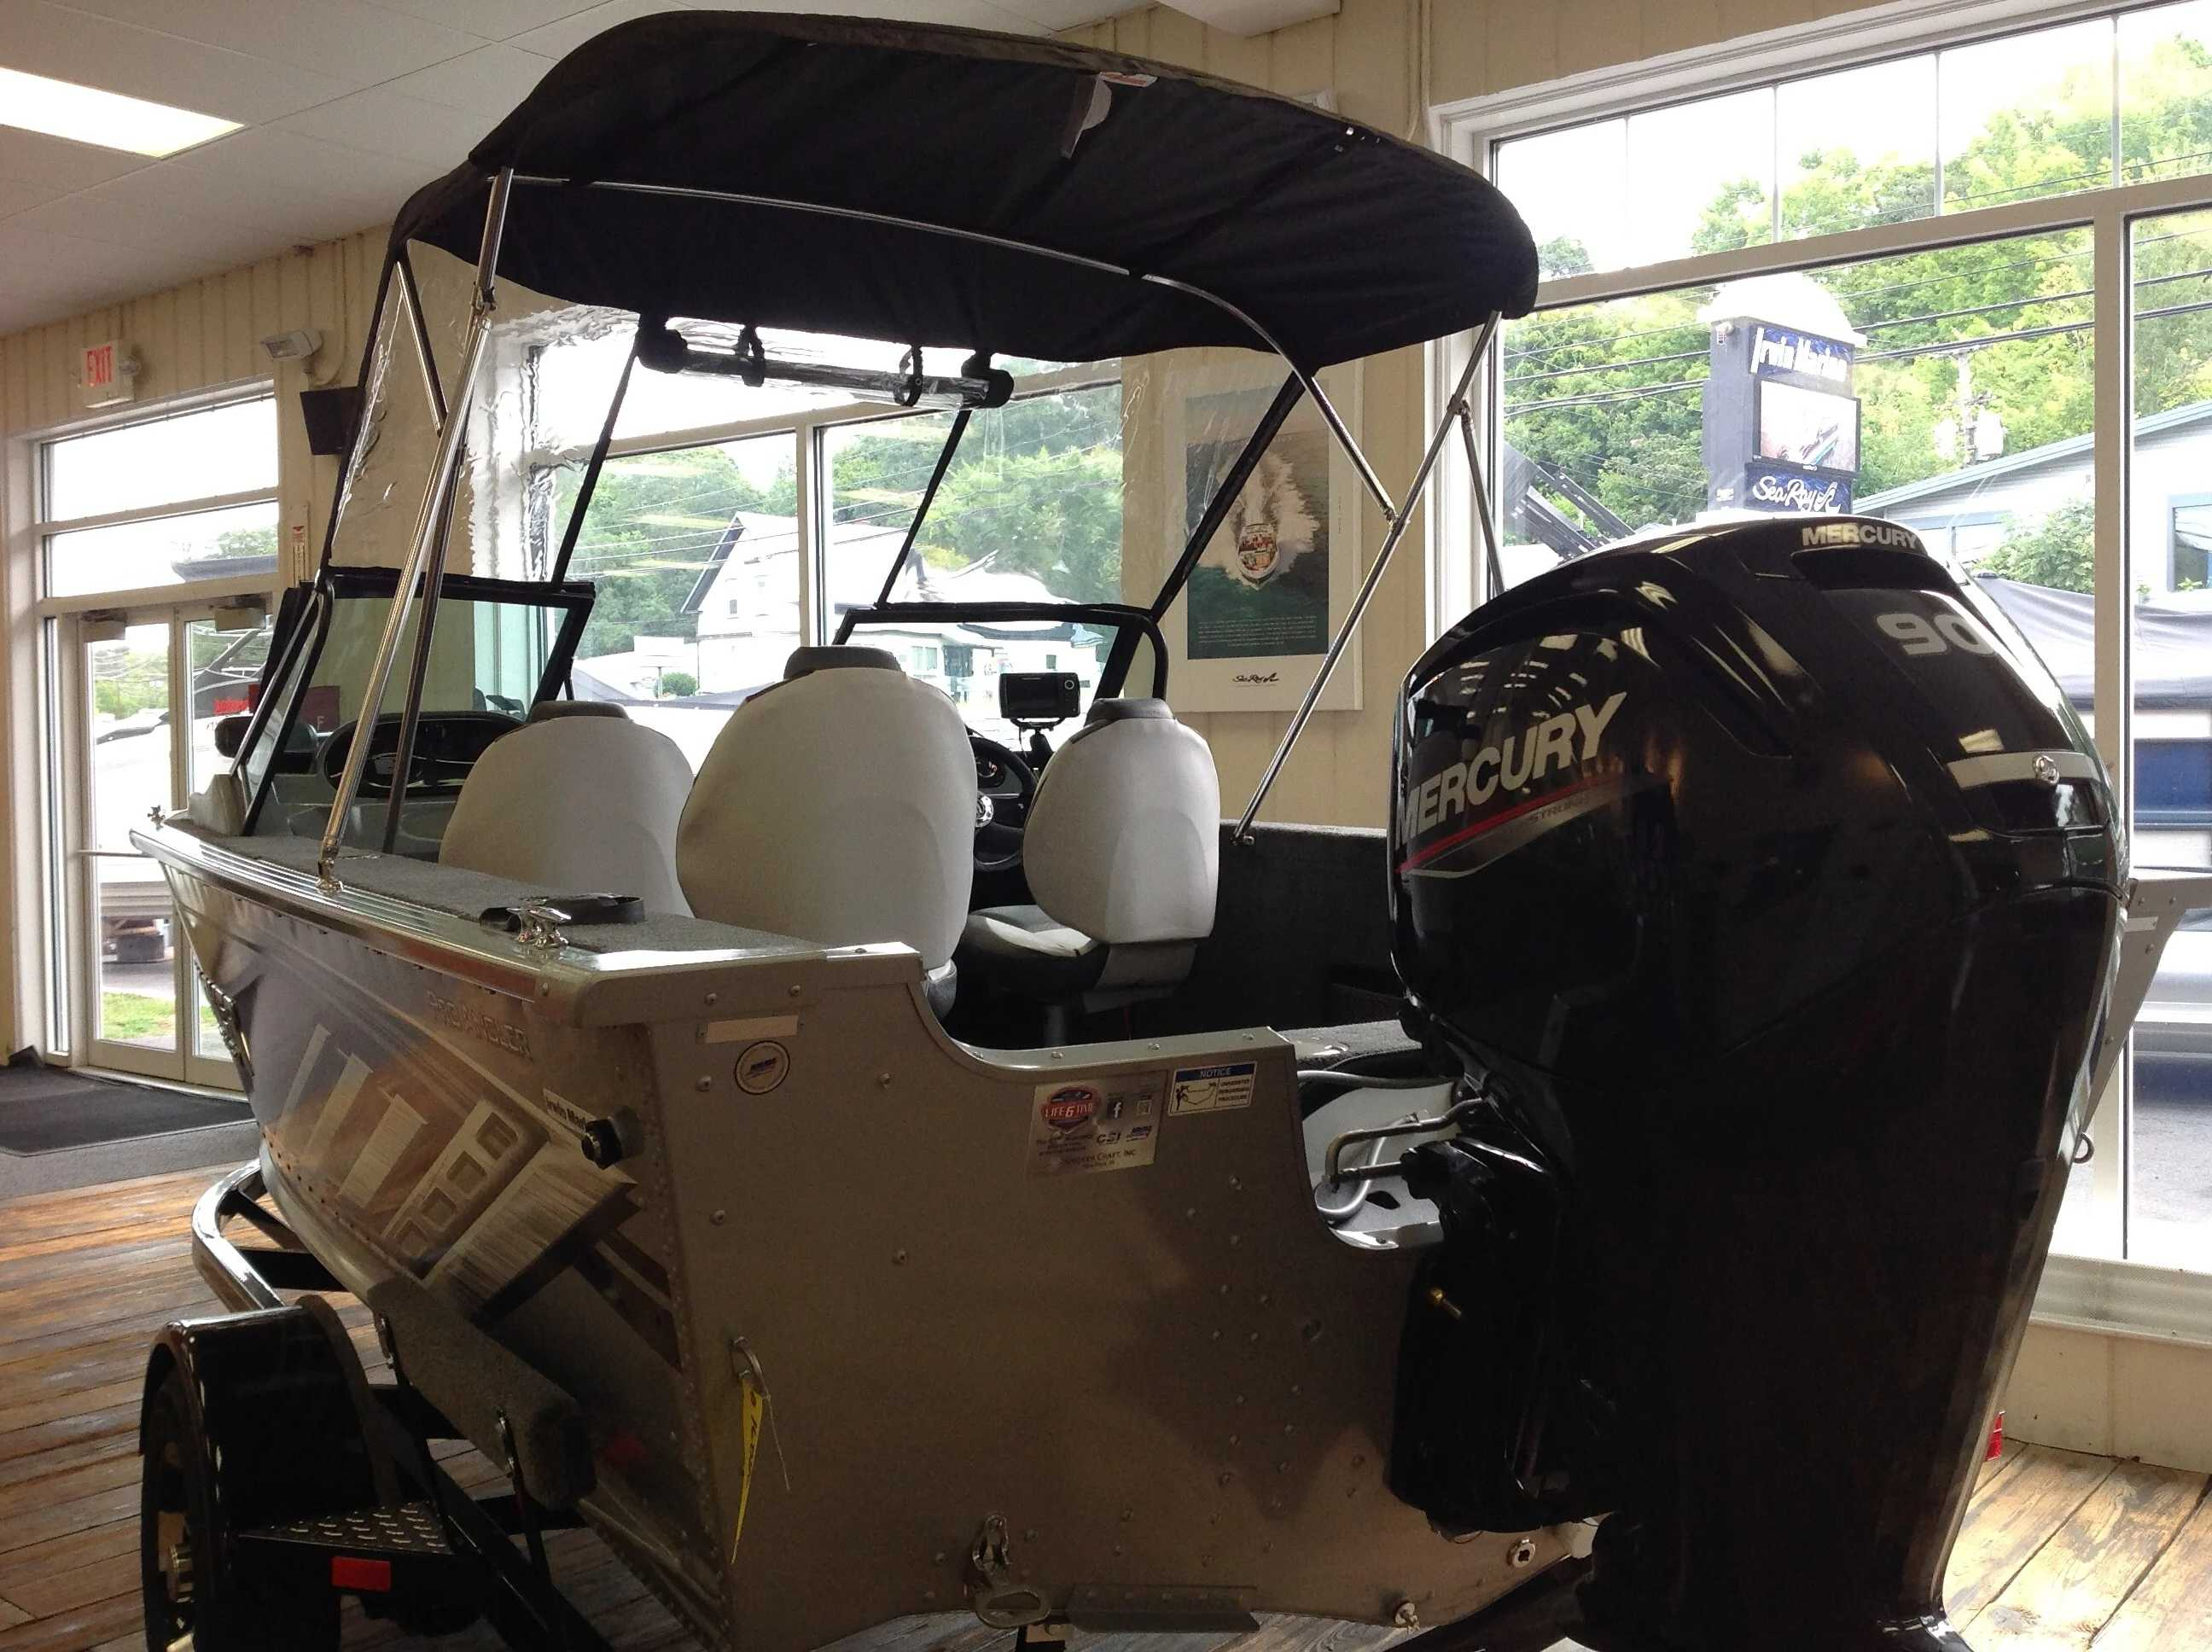 2021 Smoker Craft boat for sale, model of the boat is 172 Pro Angler & Image # 21 of 22